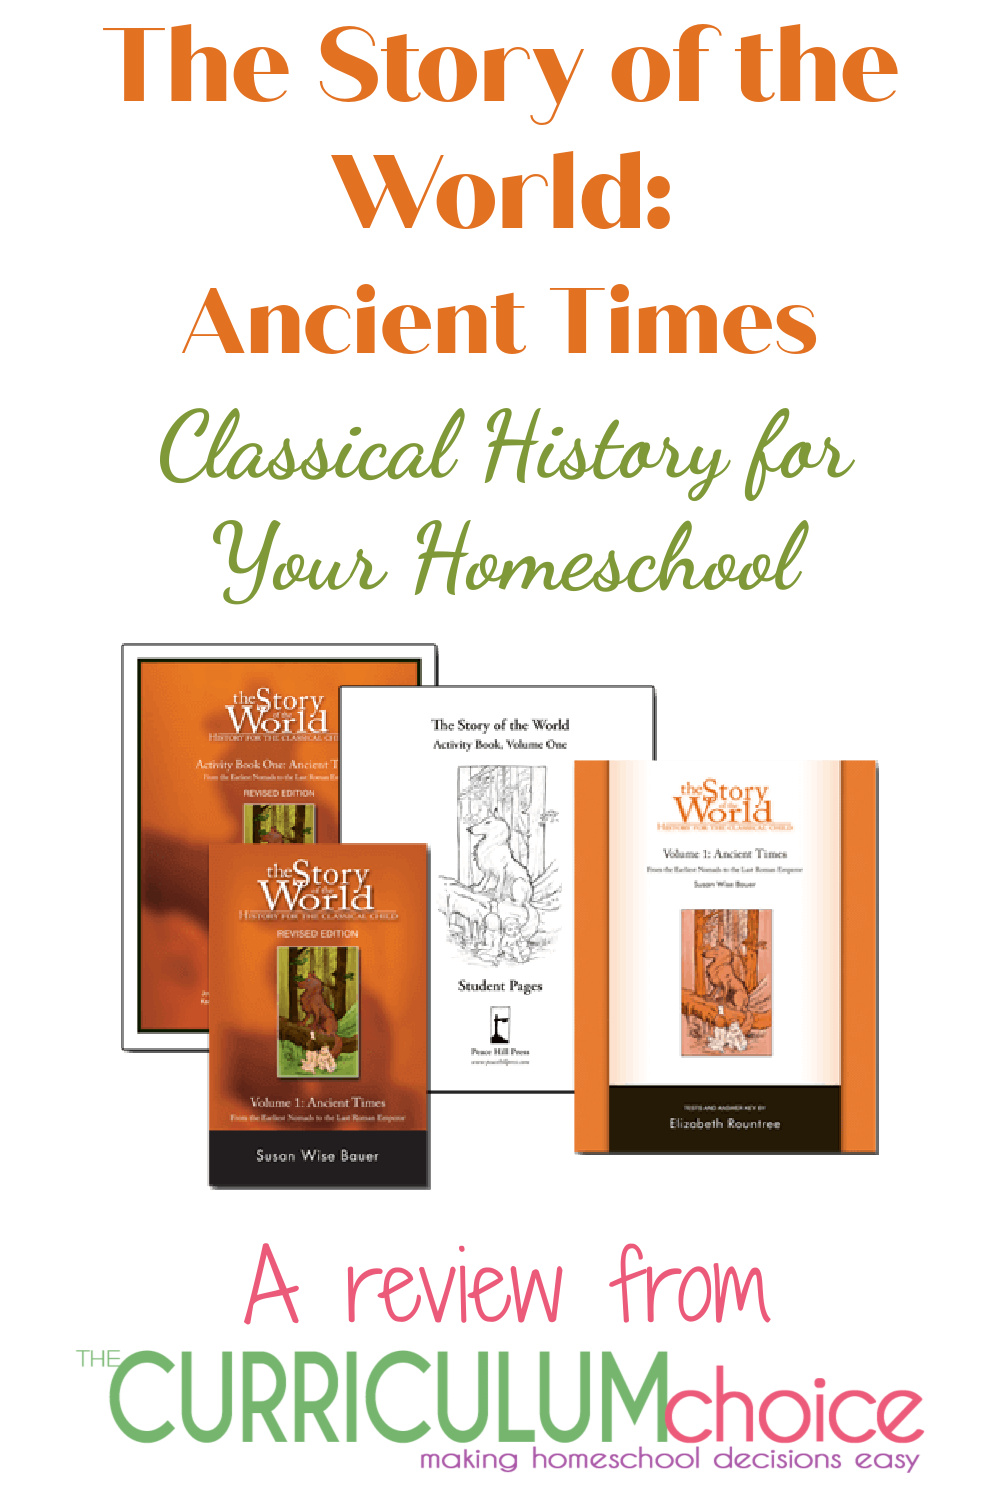 The Story of the World Ancient Times is the first in a 4 book classical education history series for homeschooling.  A review from The Curriculum Choice.